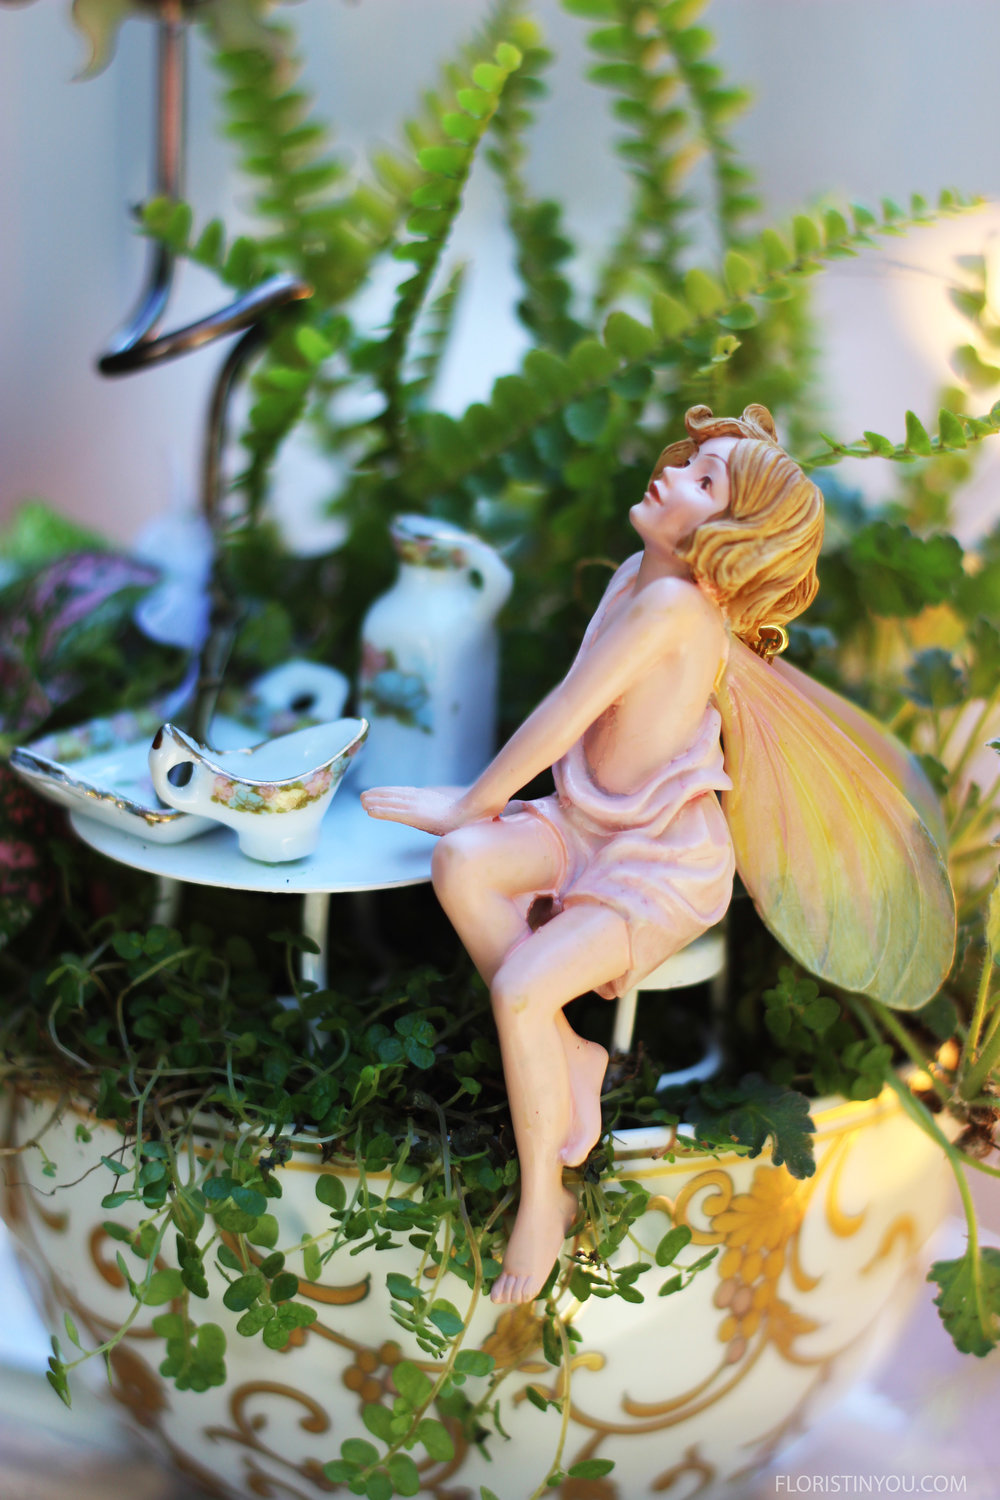 A ray of light catches the curls in her strawberry blond hair, illuminates her wings and shimmers across the gold leaf on the cup.